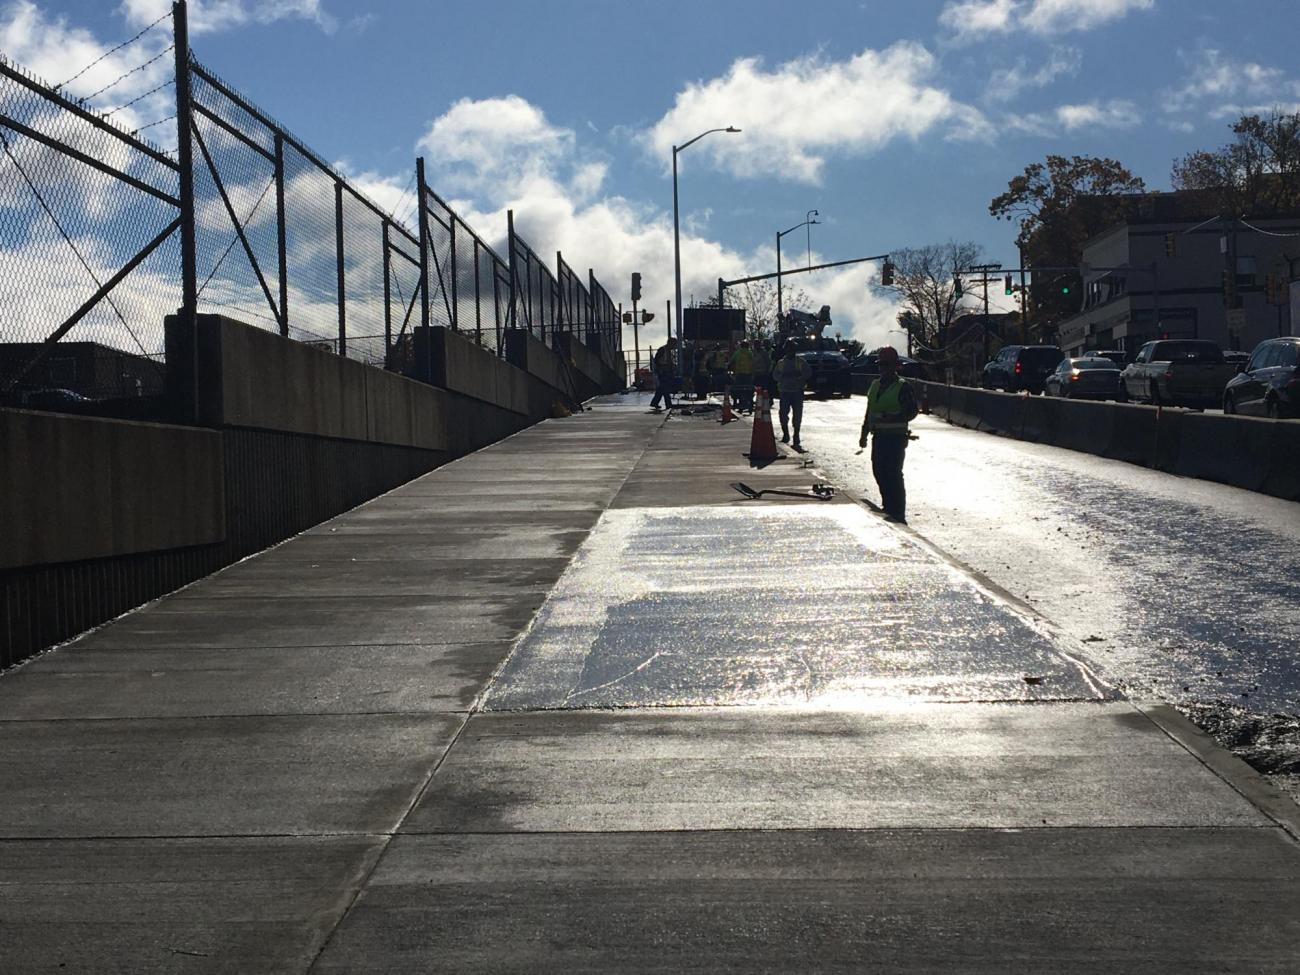 The new sidewalk at Wollaston Station along Newport Ave looking southbound (October 2019)